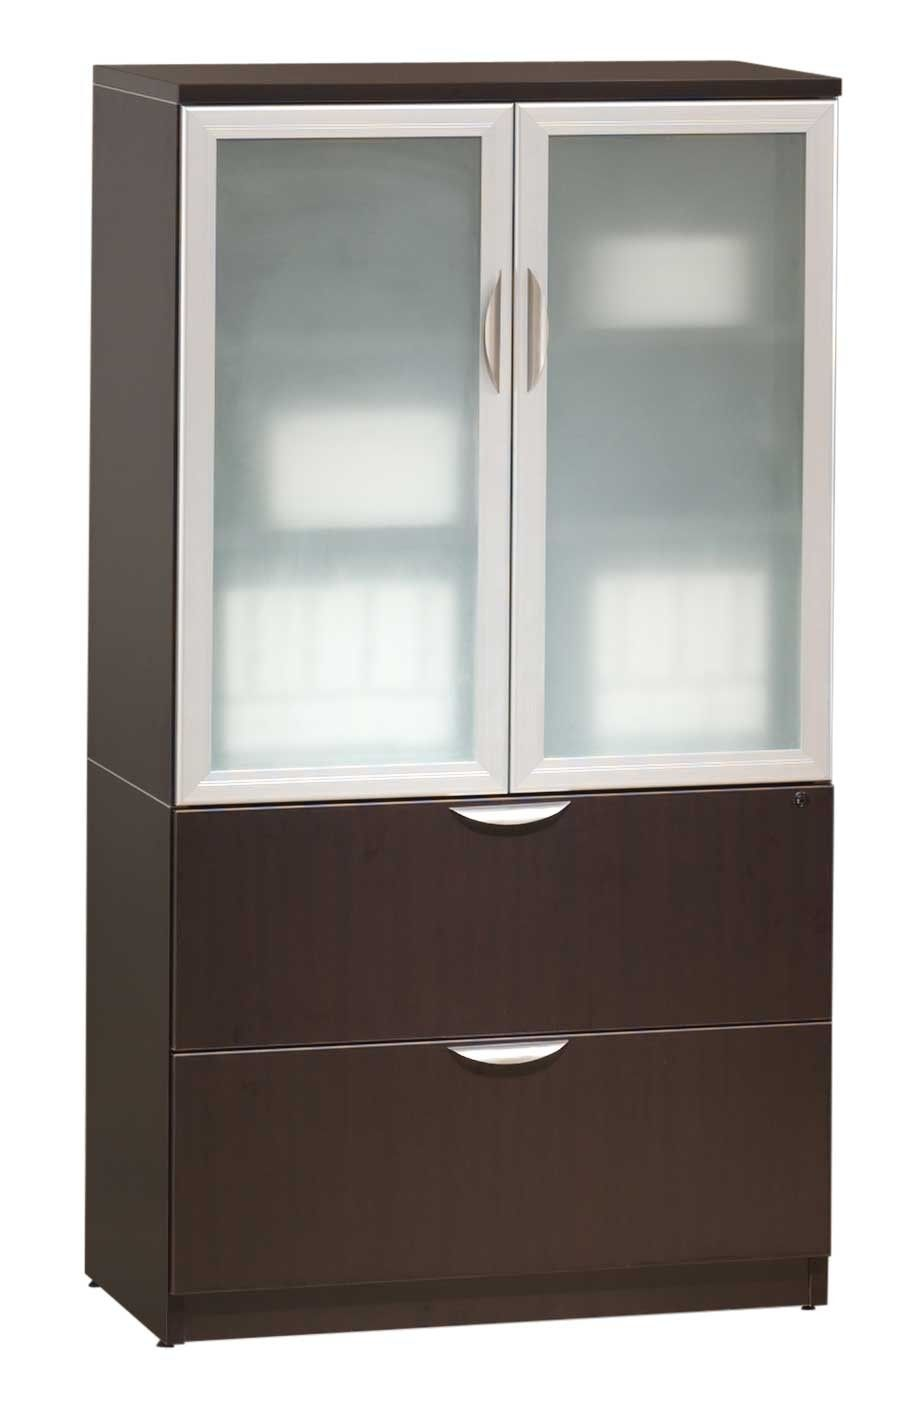 Wooden Storage Cabinets With Glass Doors httpadvicetipscom